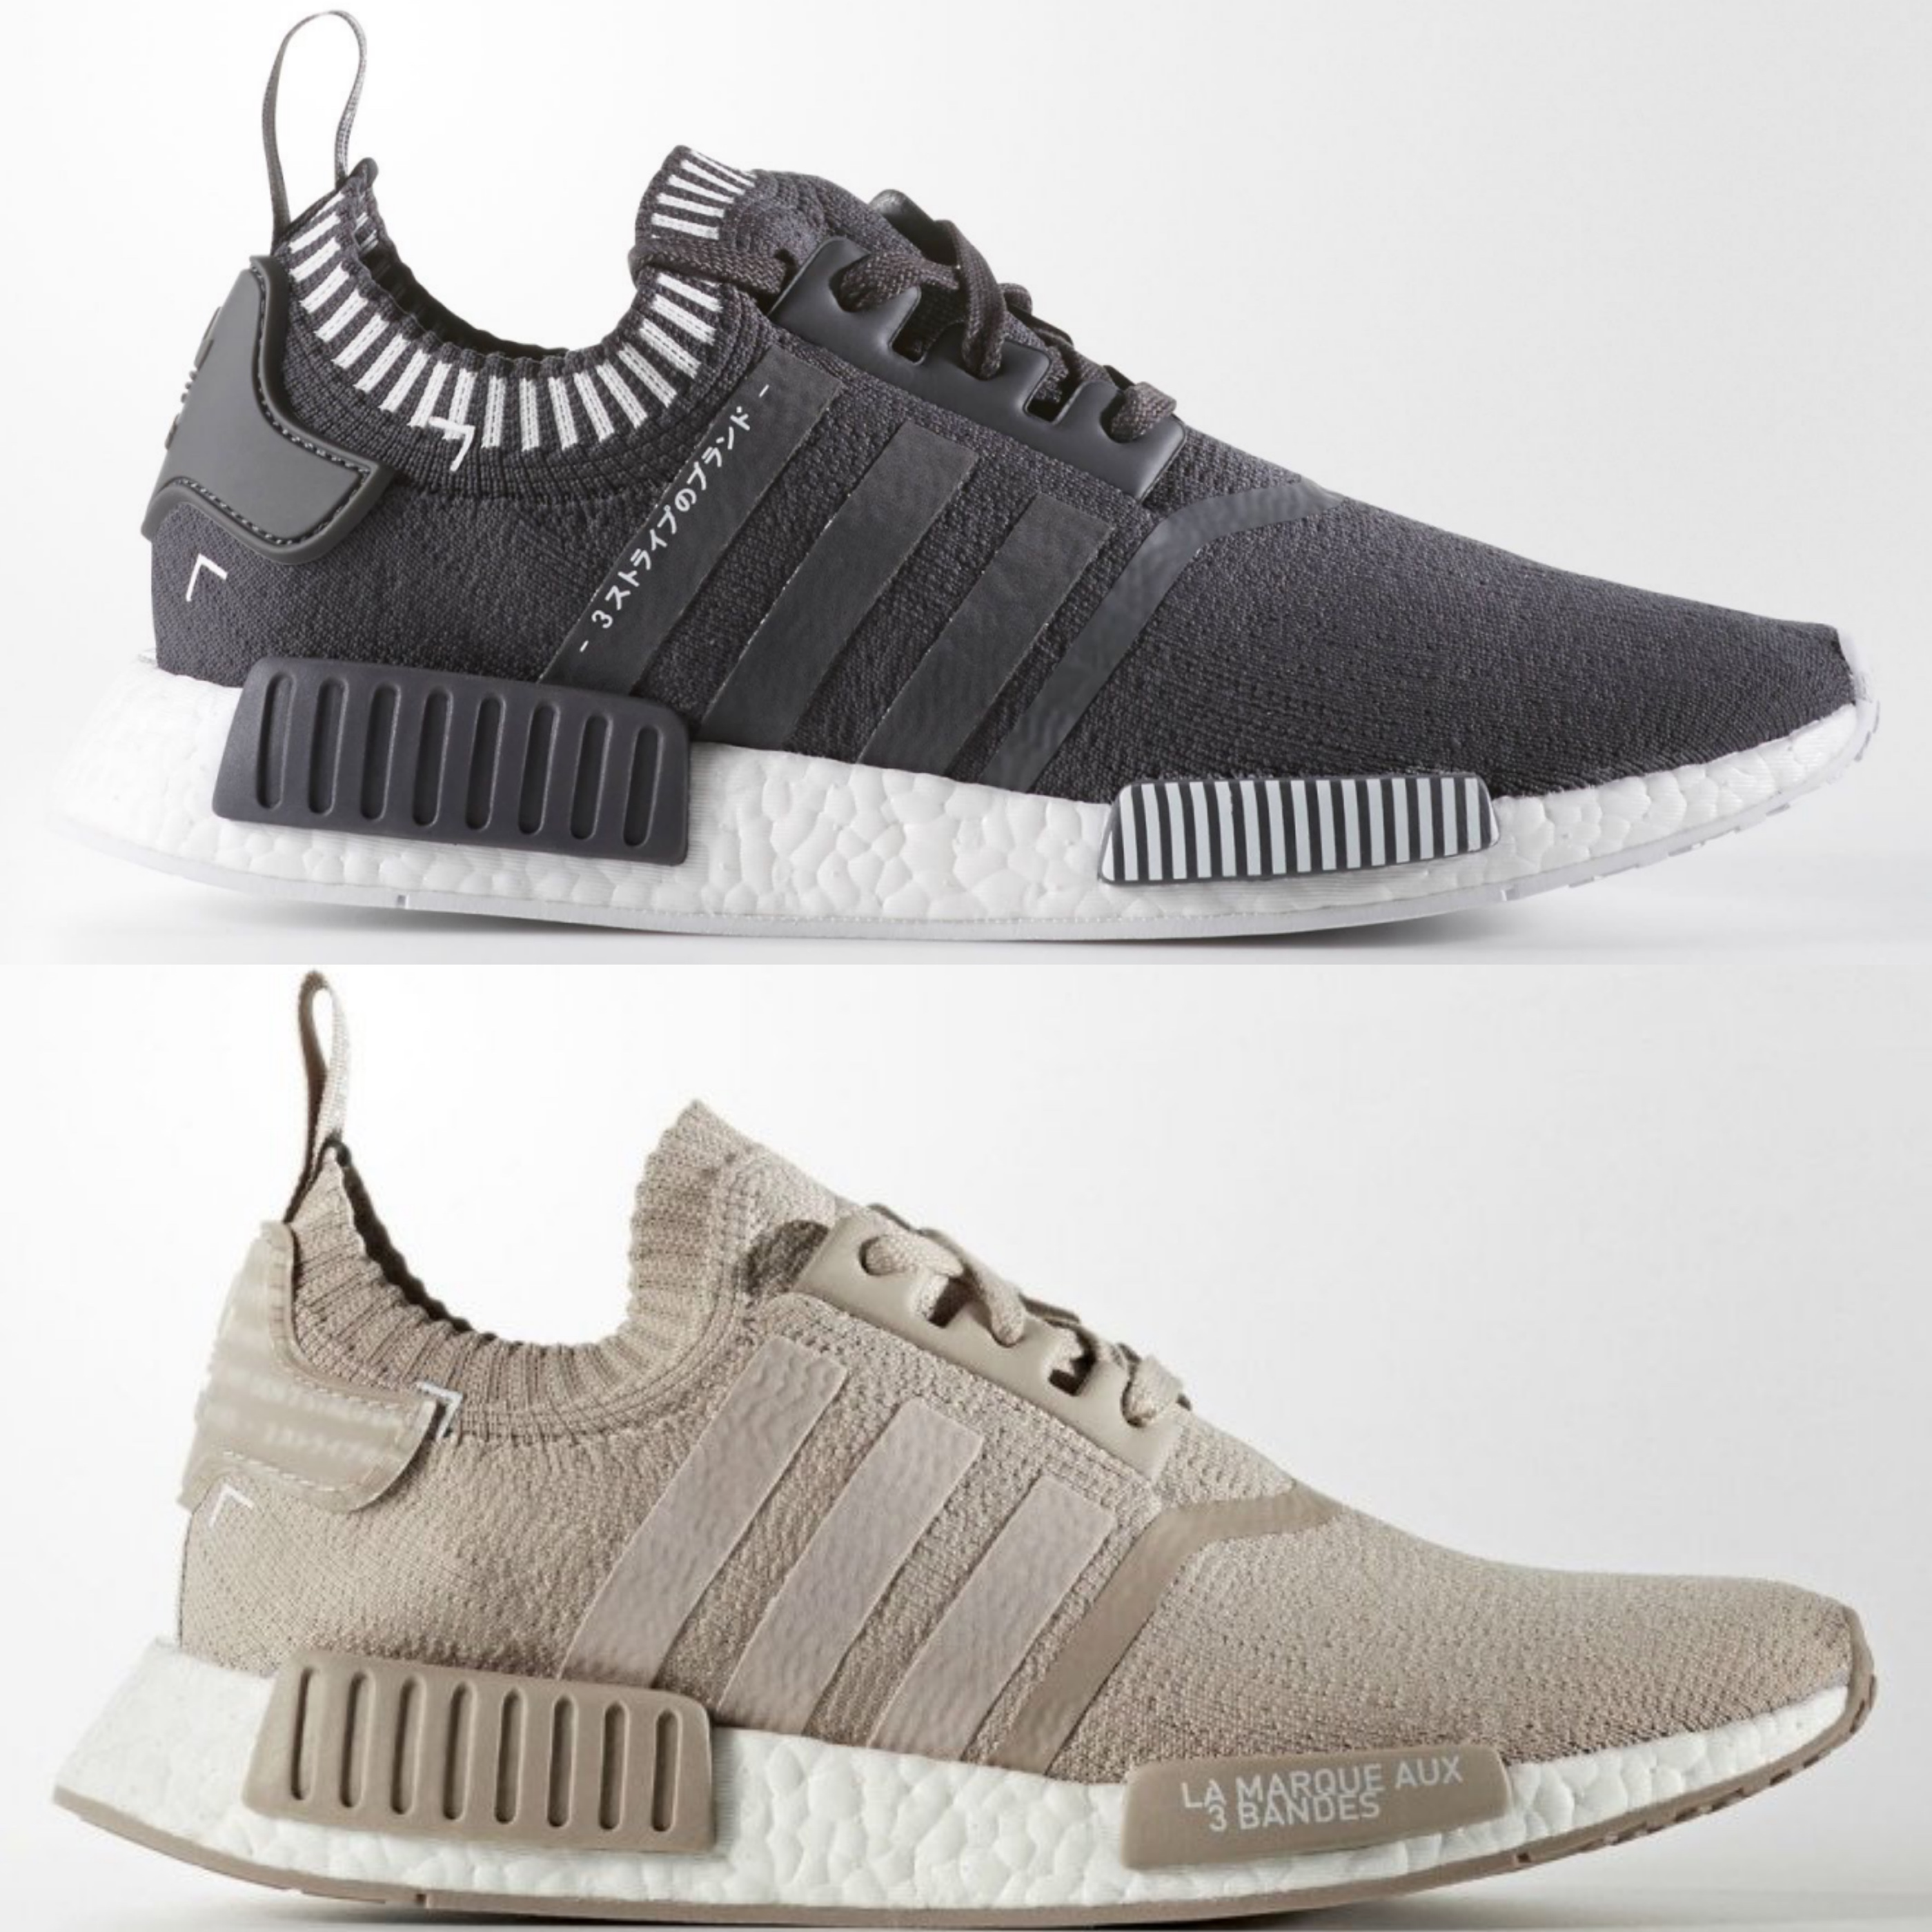 sports shoes 65e0b 58e2d The adidas NMD Runner R1 'Language Pack' has Restocked ...